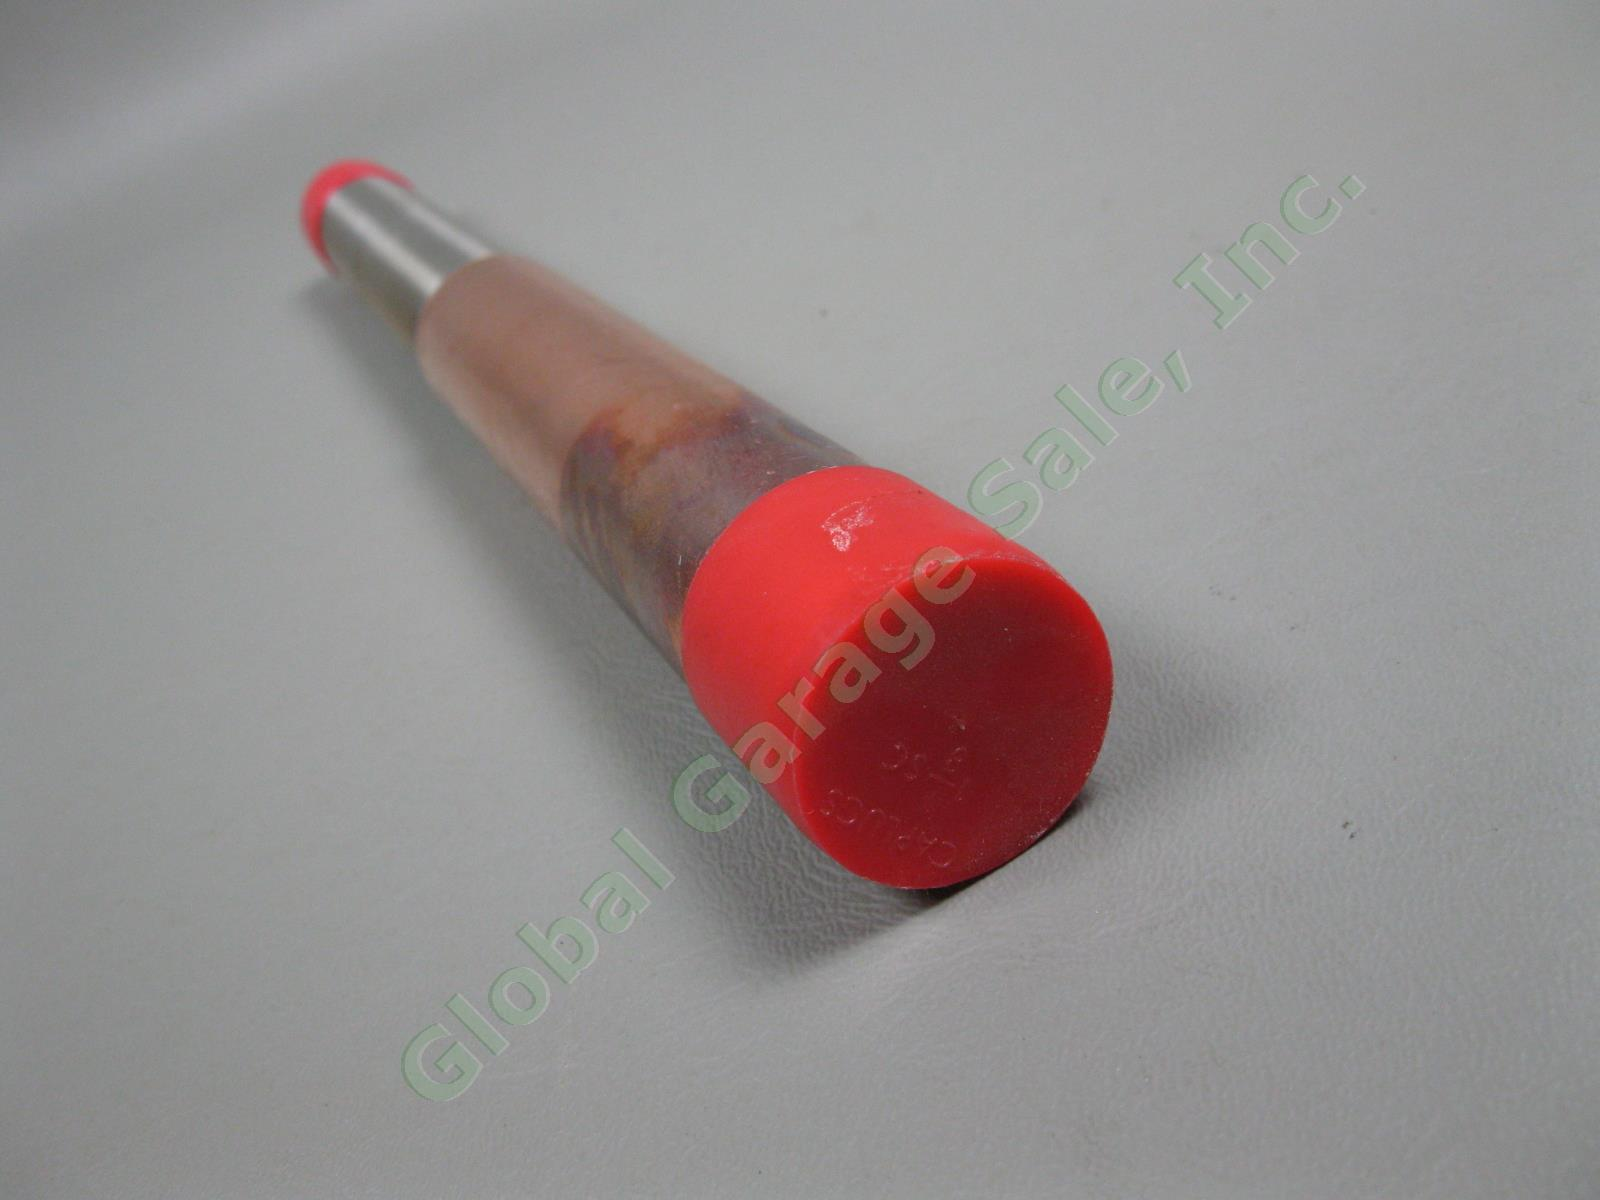 NEW-1-034-SS-OD-x-CU-Lead-Copper-Joiner-Transition-12-25-034-Pipe-Cleaned-O2-Service thumbnail 6